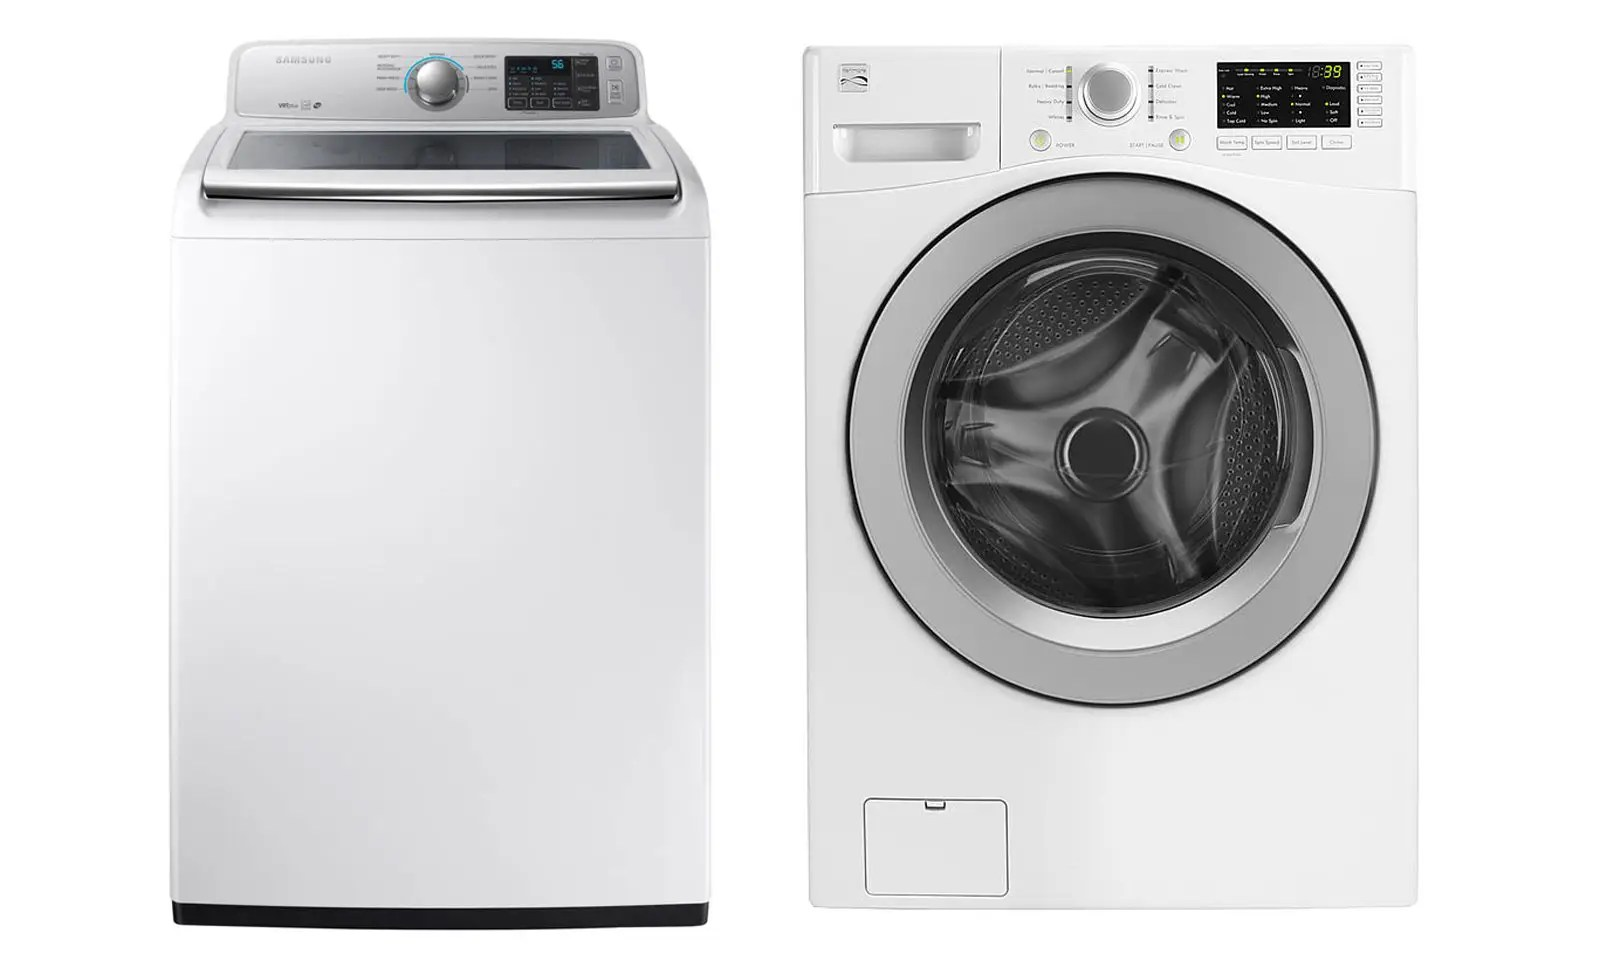 Top-Load vs. Front-Load Washer